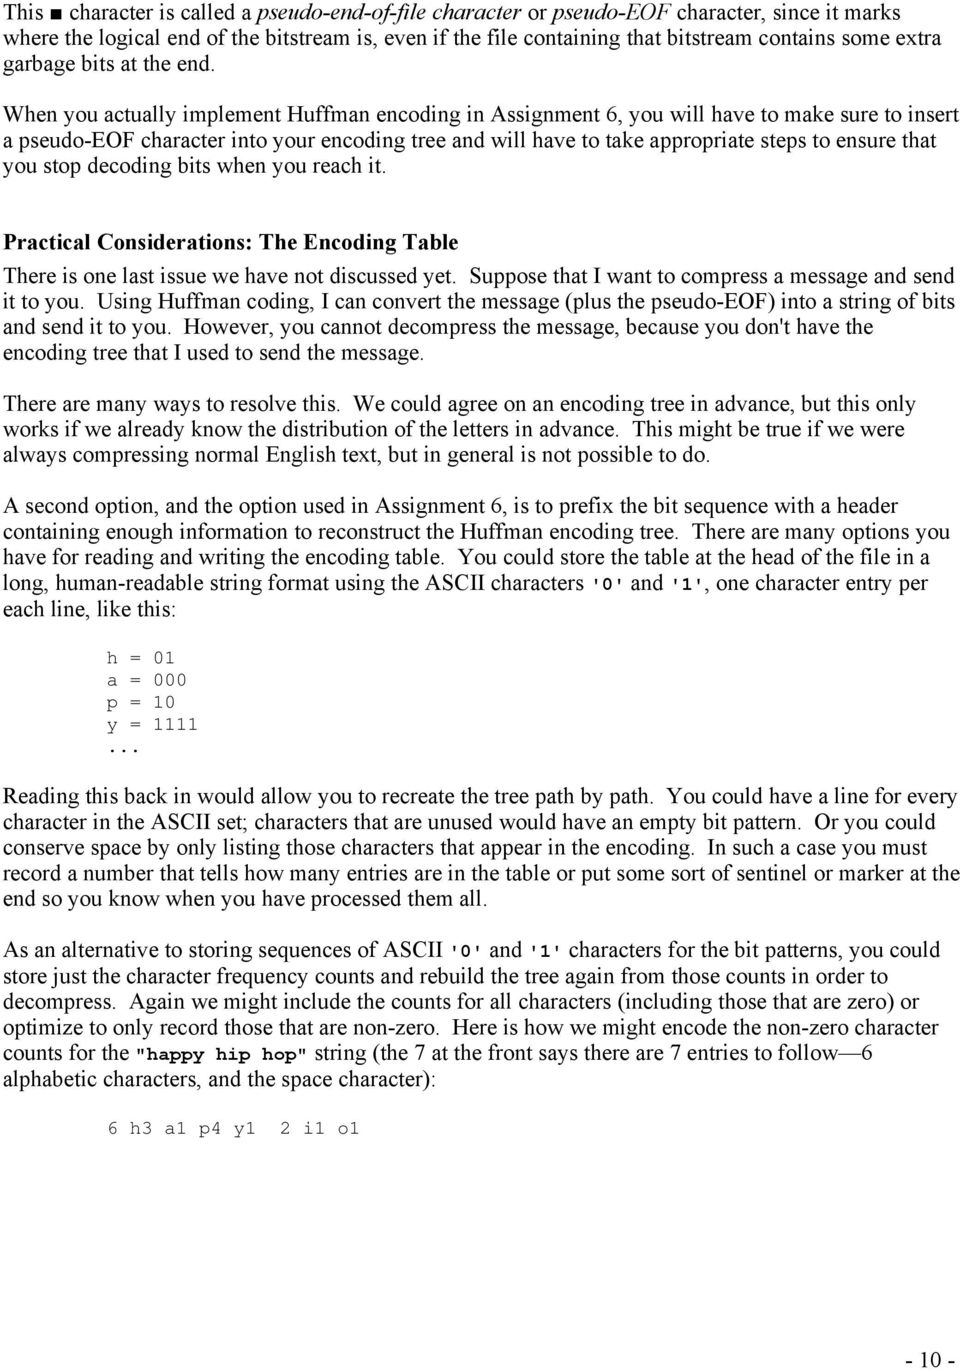 1 - Handout #22 May 23, 2012 Huffman Encoding and Data Compression